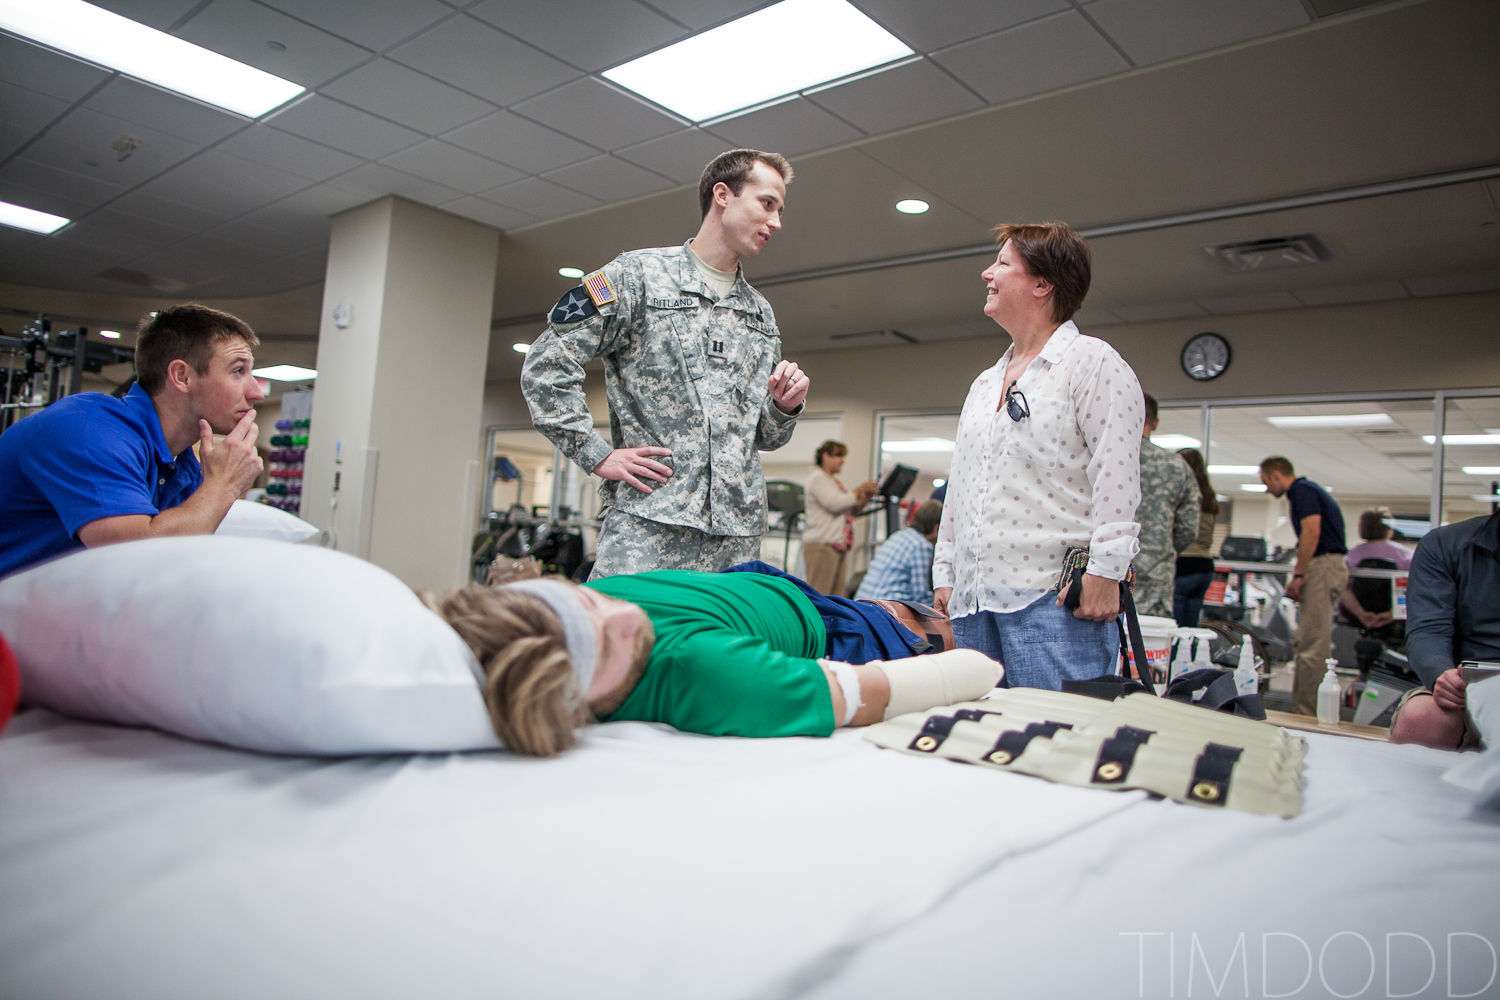 Tim Dodd Photography of Cedar Falls Iowa visits friend Taylor Morris a quad amputee injured while serving in Afghanistan